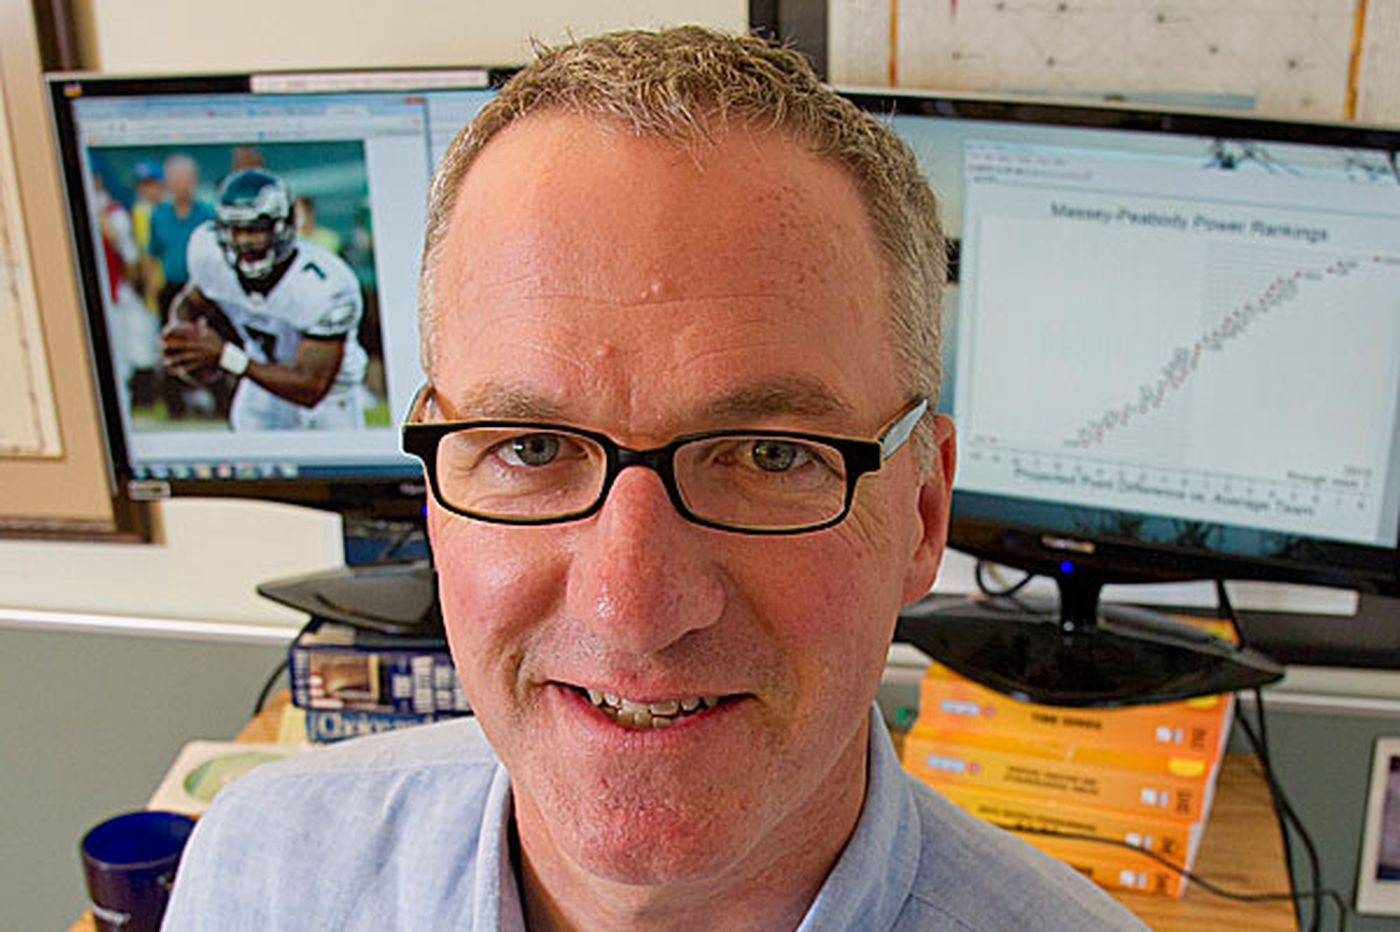 Wharton professor studies NFL draft, NFL folly